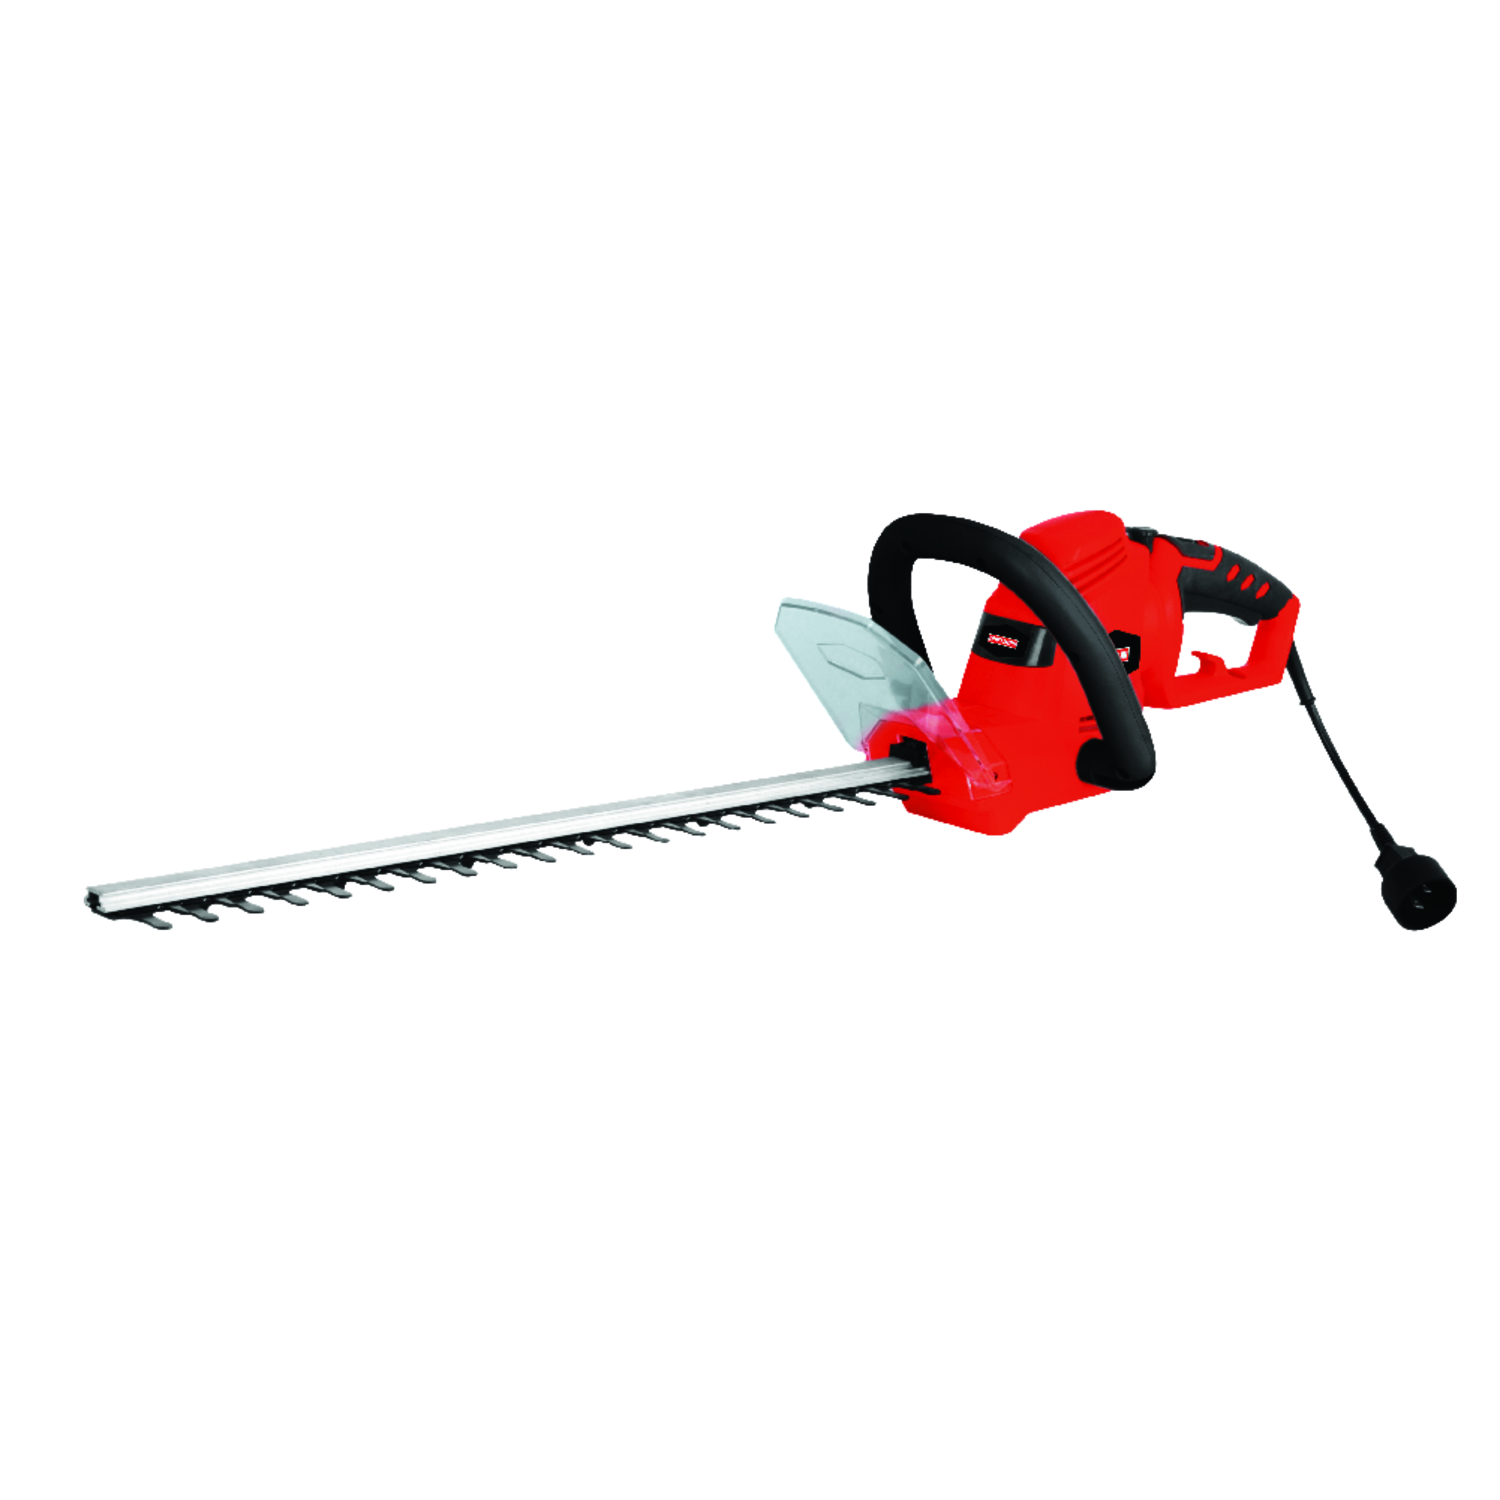 Craftsman  22 in. L Hedge Trimmer